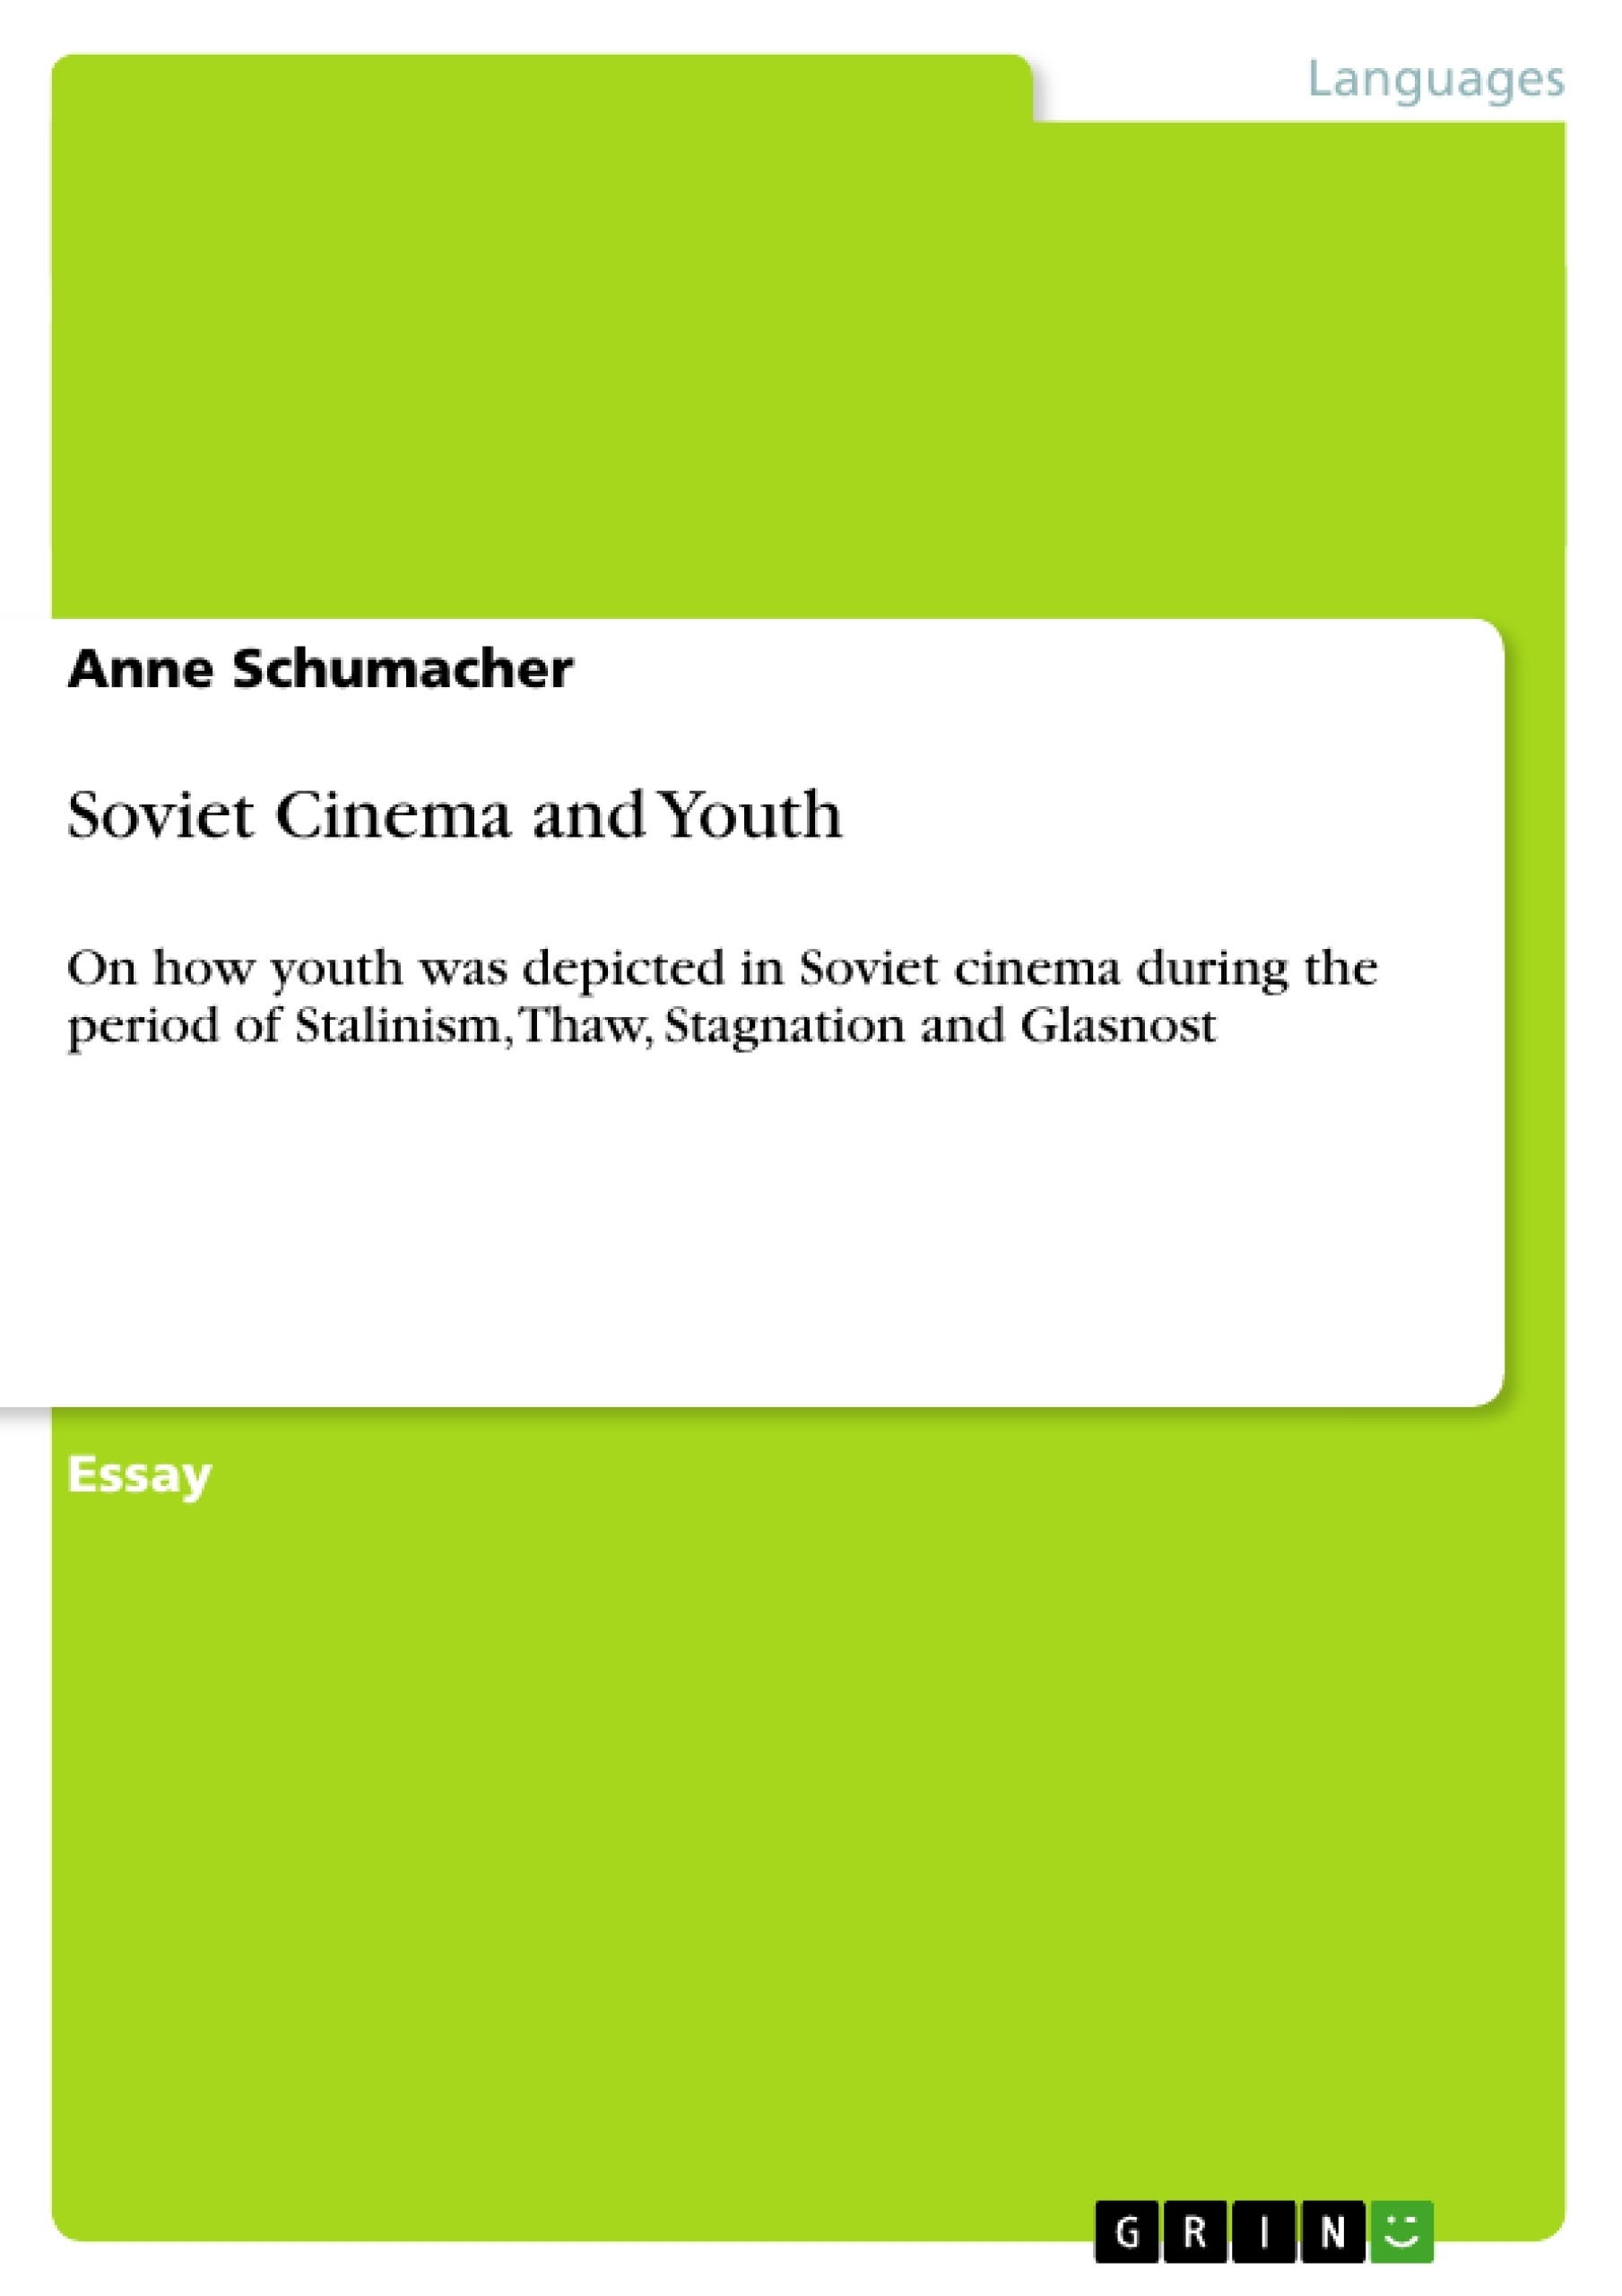 Title: Soviet Cinema and Youth